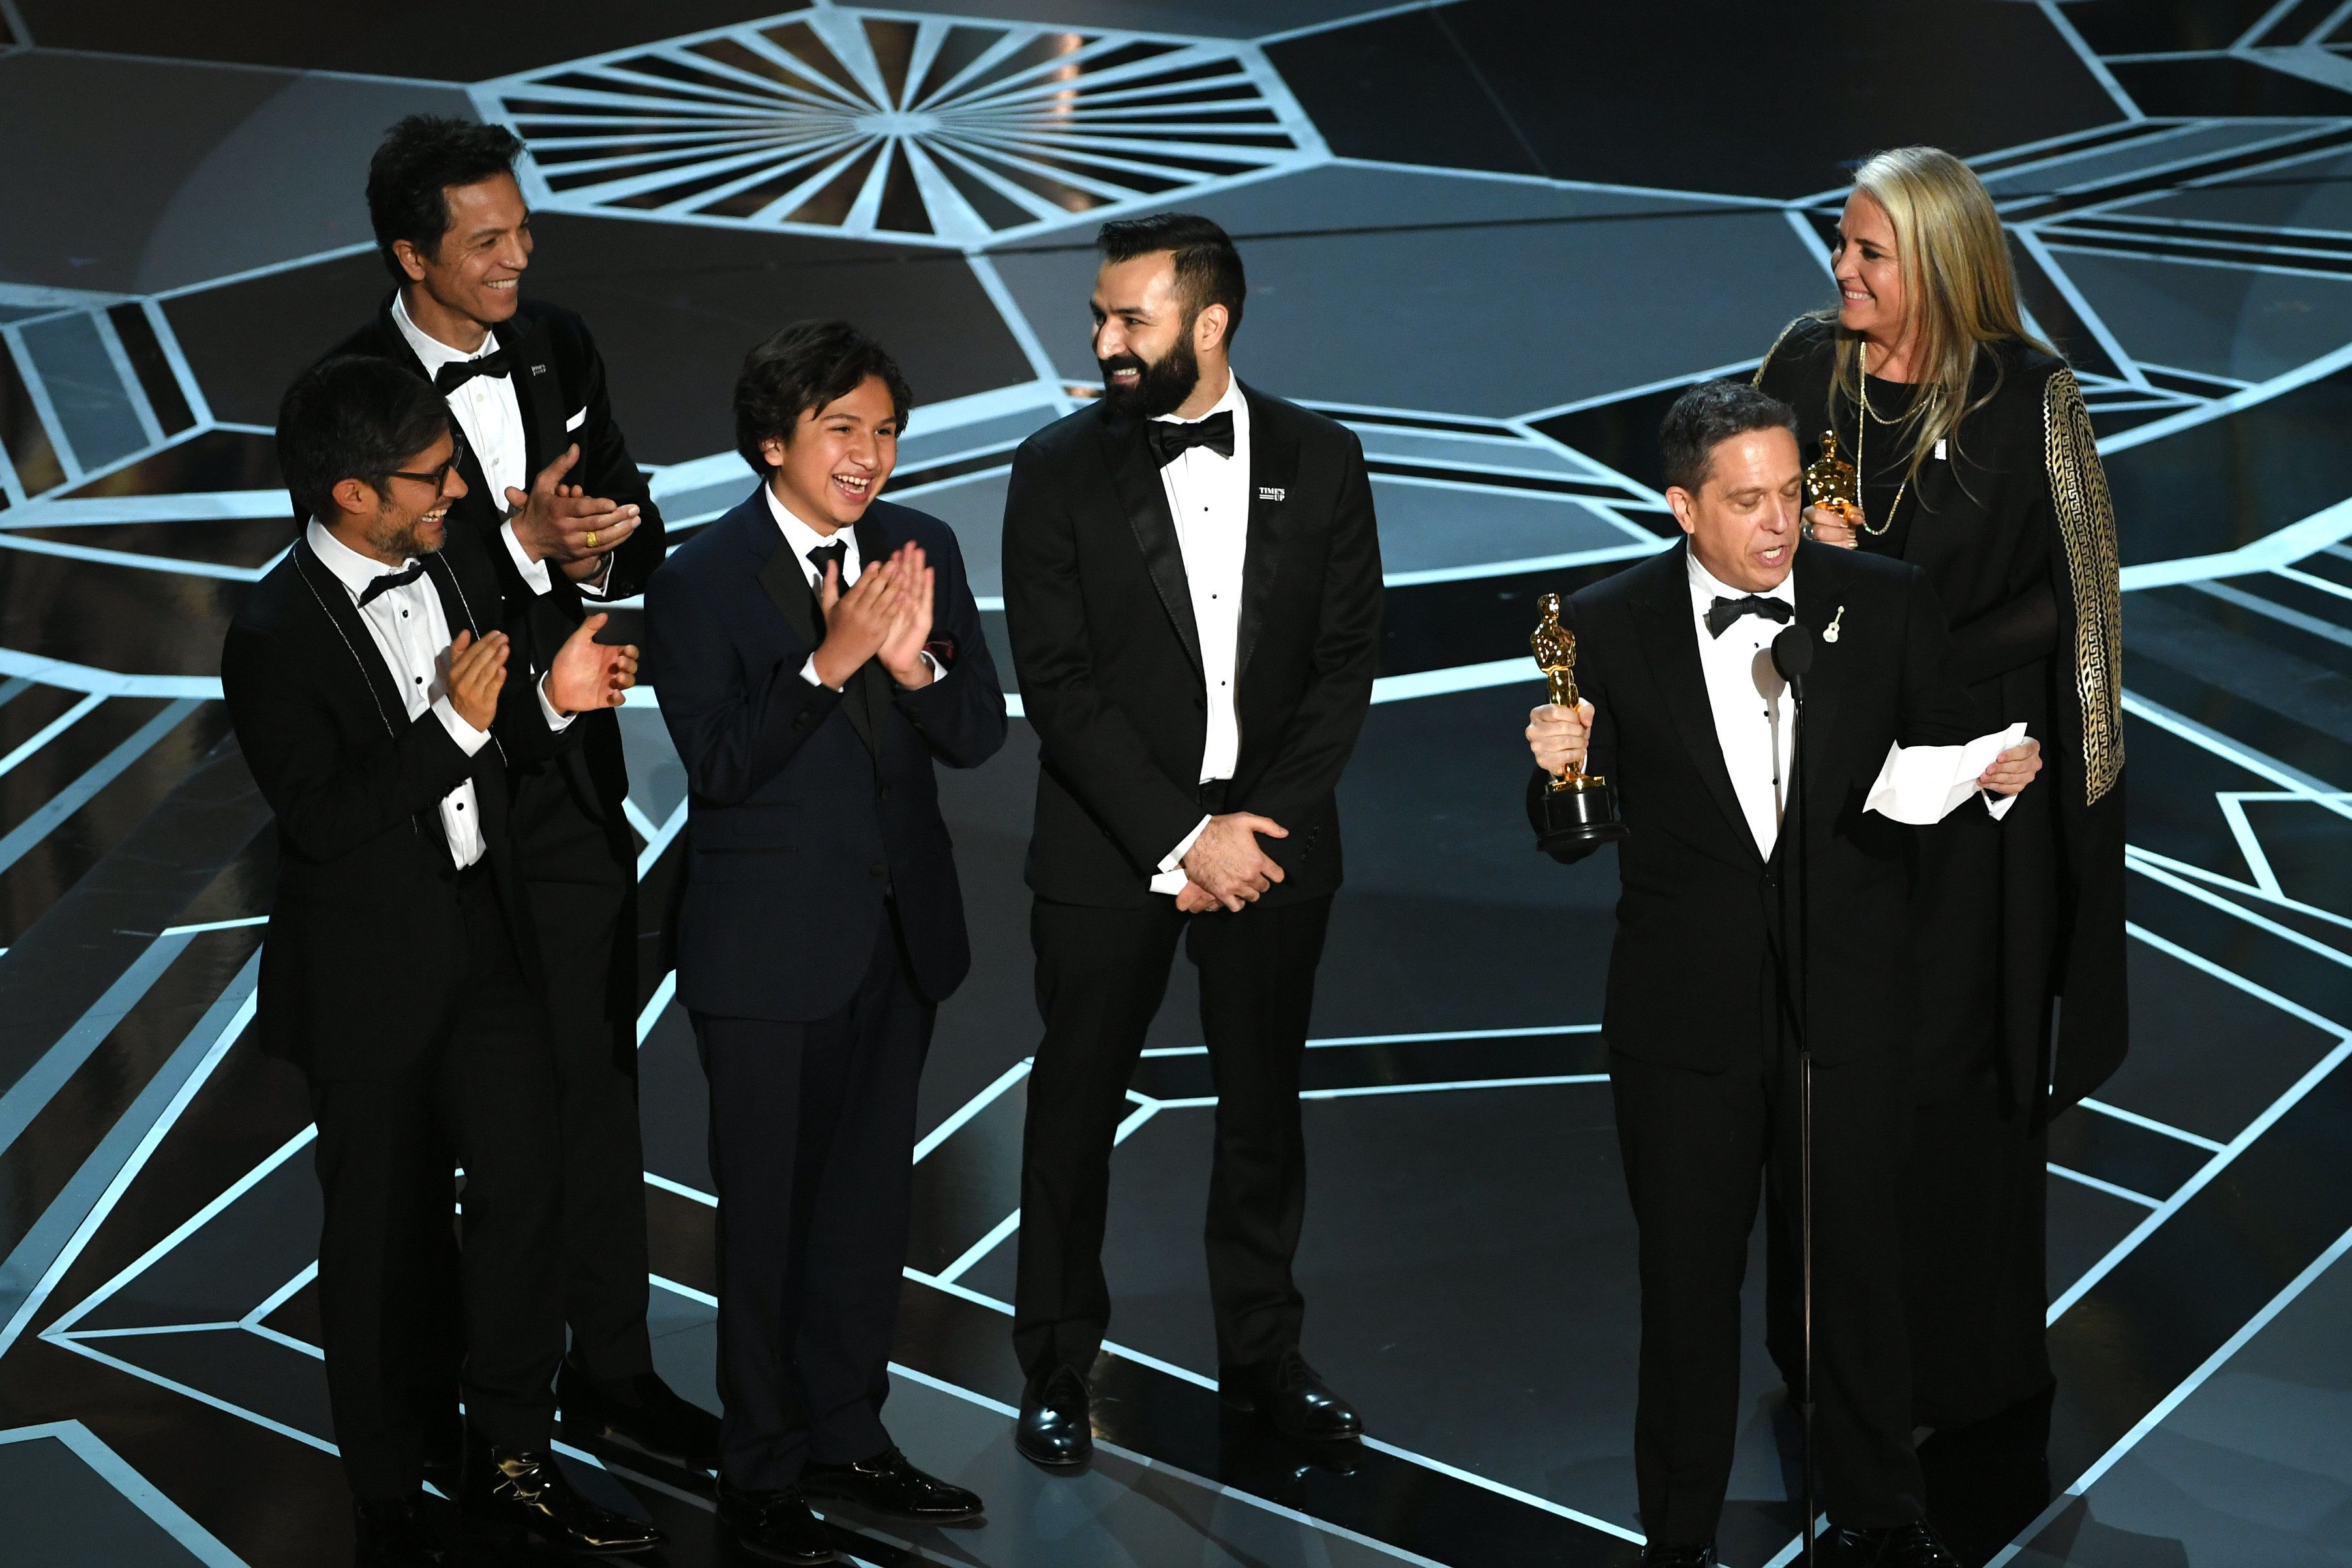 HOLLYWOOD, CA - MARCH 04:  (L-R) Actors Gael Garcia Bernal, Benjamin Bratt and Anthony Gonzalez, co-directors Adrian Molina and Lee Unkrich, and producer Darla K. Anderson accept Best Animated Feature Film for 'Coco' onstage during the 90th Annual Academy Awards at the Dolby Theatre at Hollywood & Highland Center on March 4, 2018 in Hollywood, California.  (Photo by Kevin Winter/Getty Images)